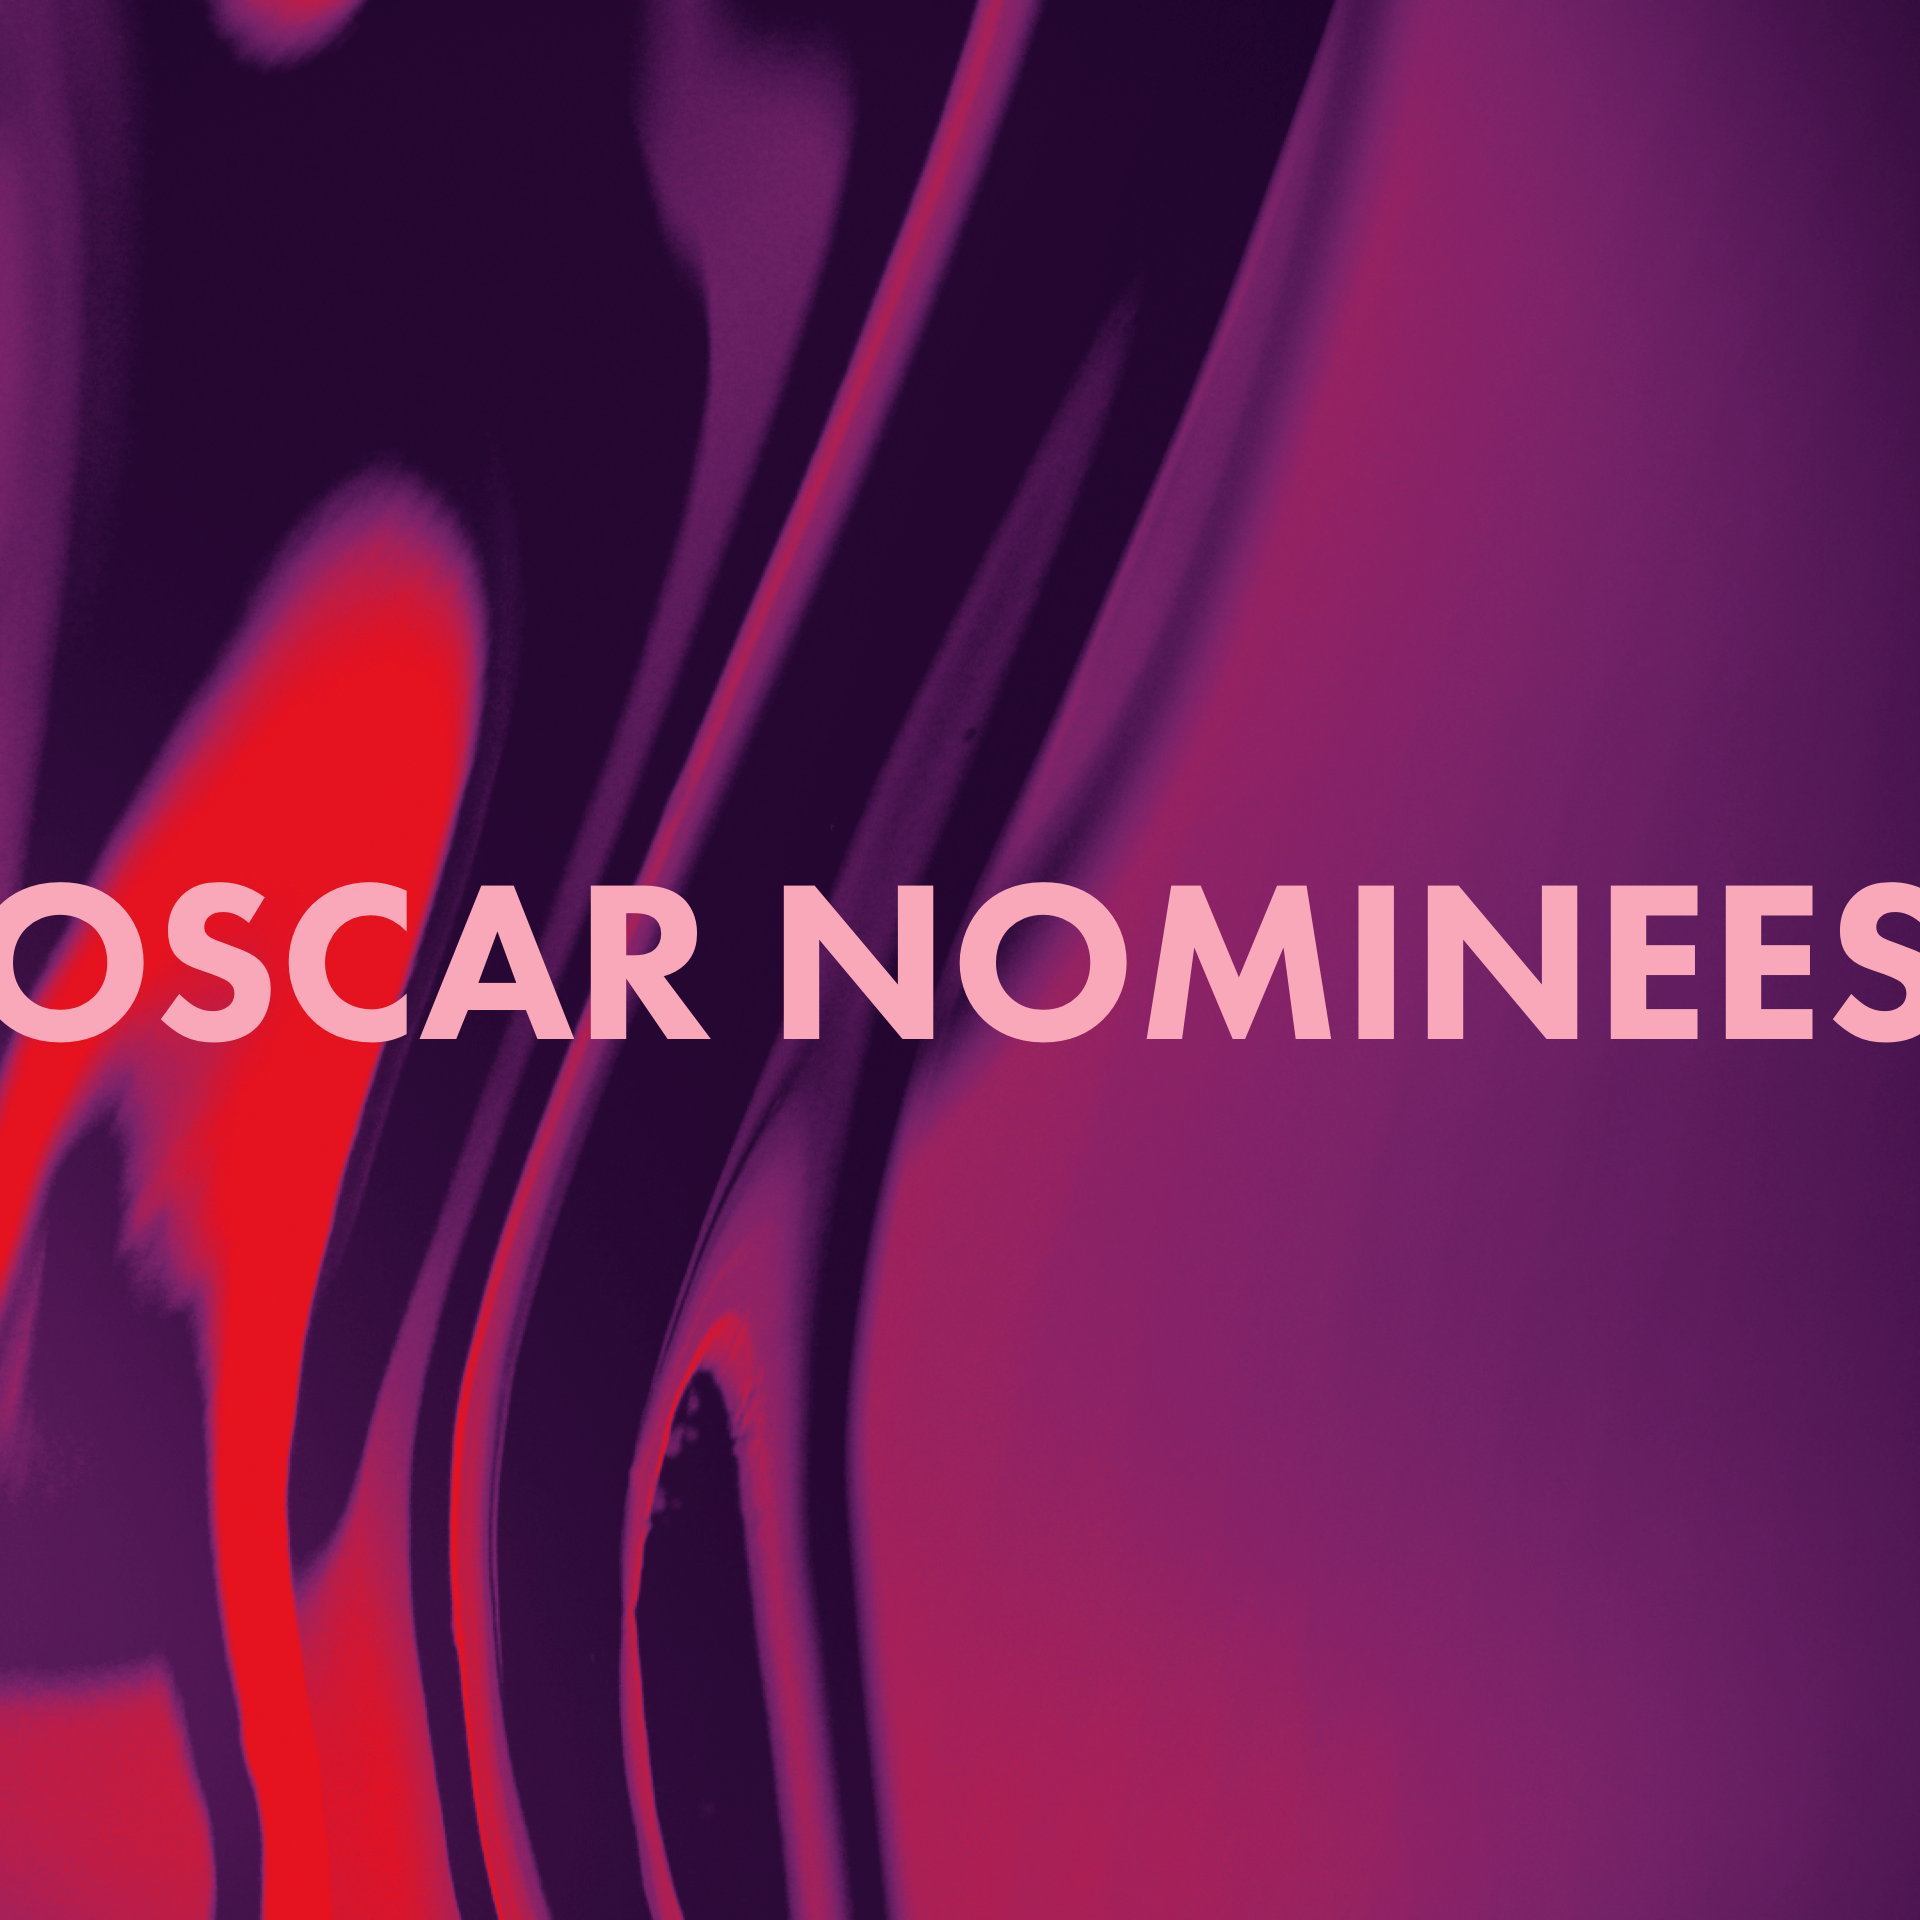 Oscar Nominations 2019: The Complete List - 91st Academy